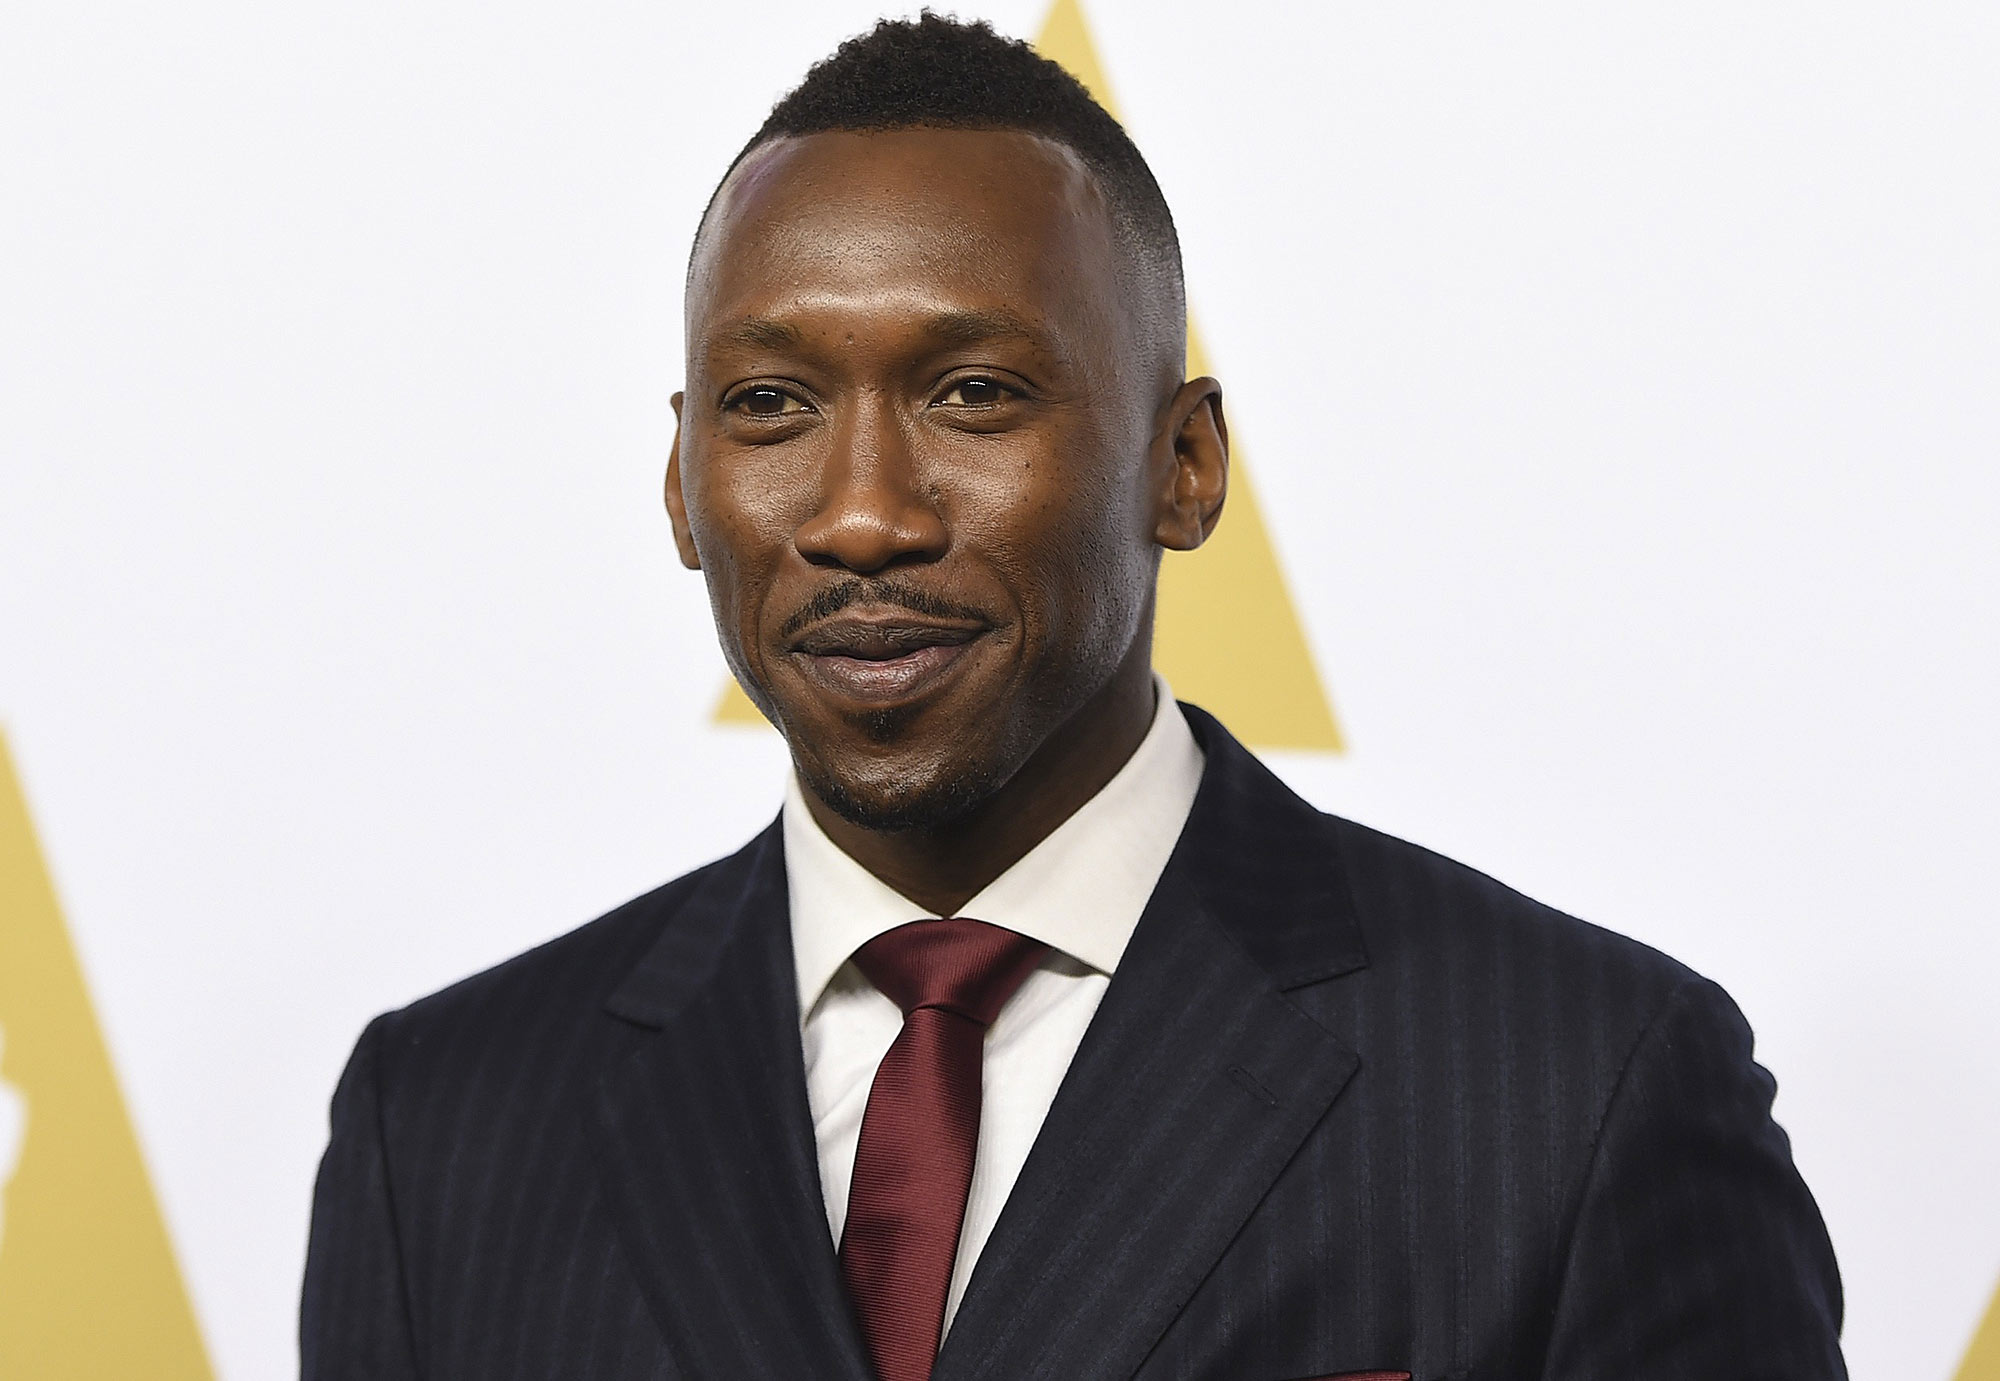 Mahershala Ali arrives at the 89th Academy Awards Nominees Luncheon at The Beverly Hilton Hotel on Monday, Feb. 6, 2017, in Beverly Hills, Calif. (Photo by Jordan Strauss/Invision/AP)